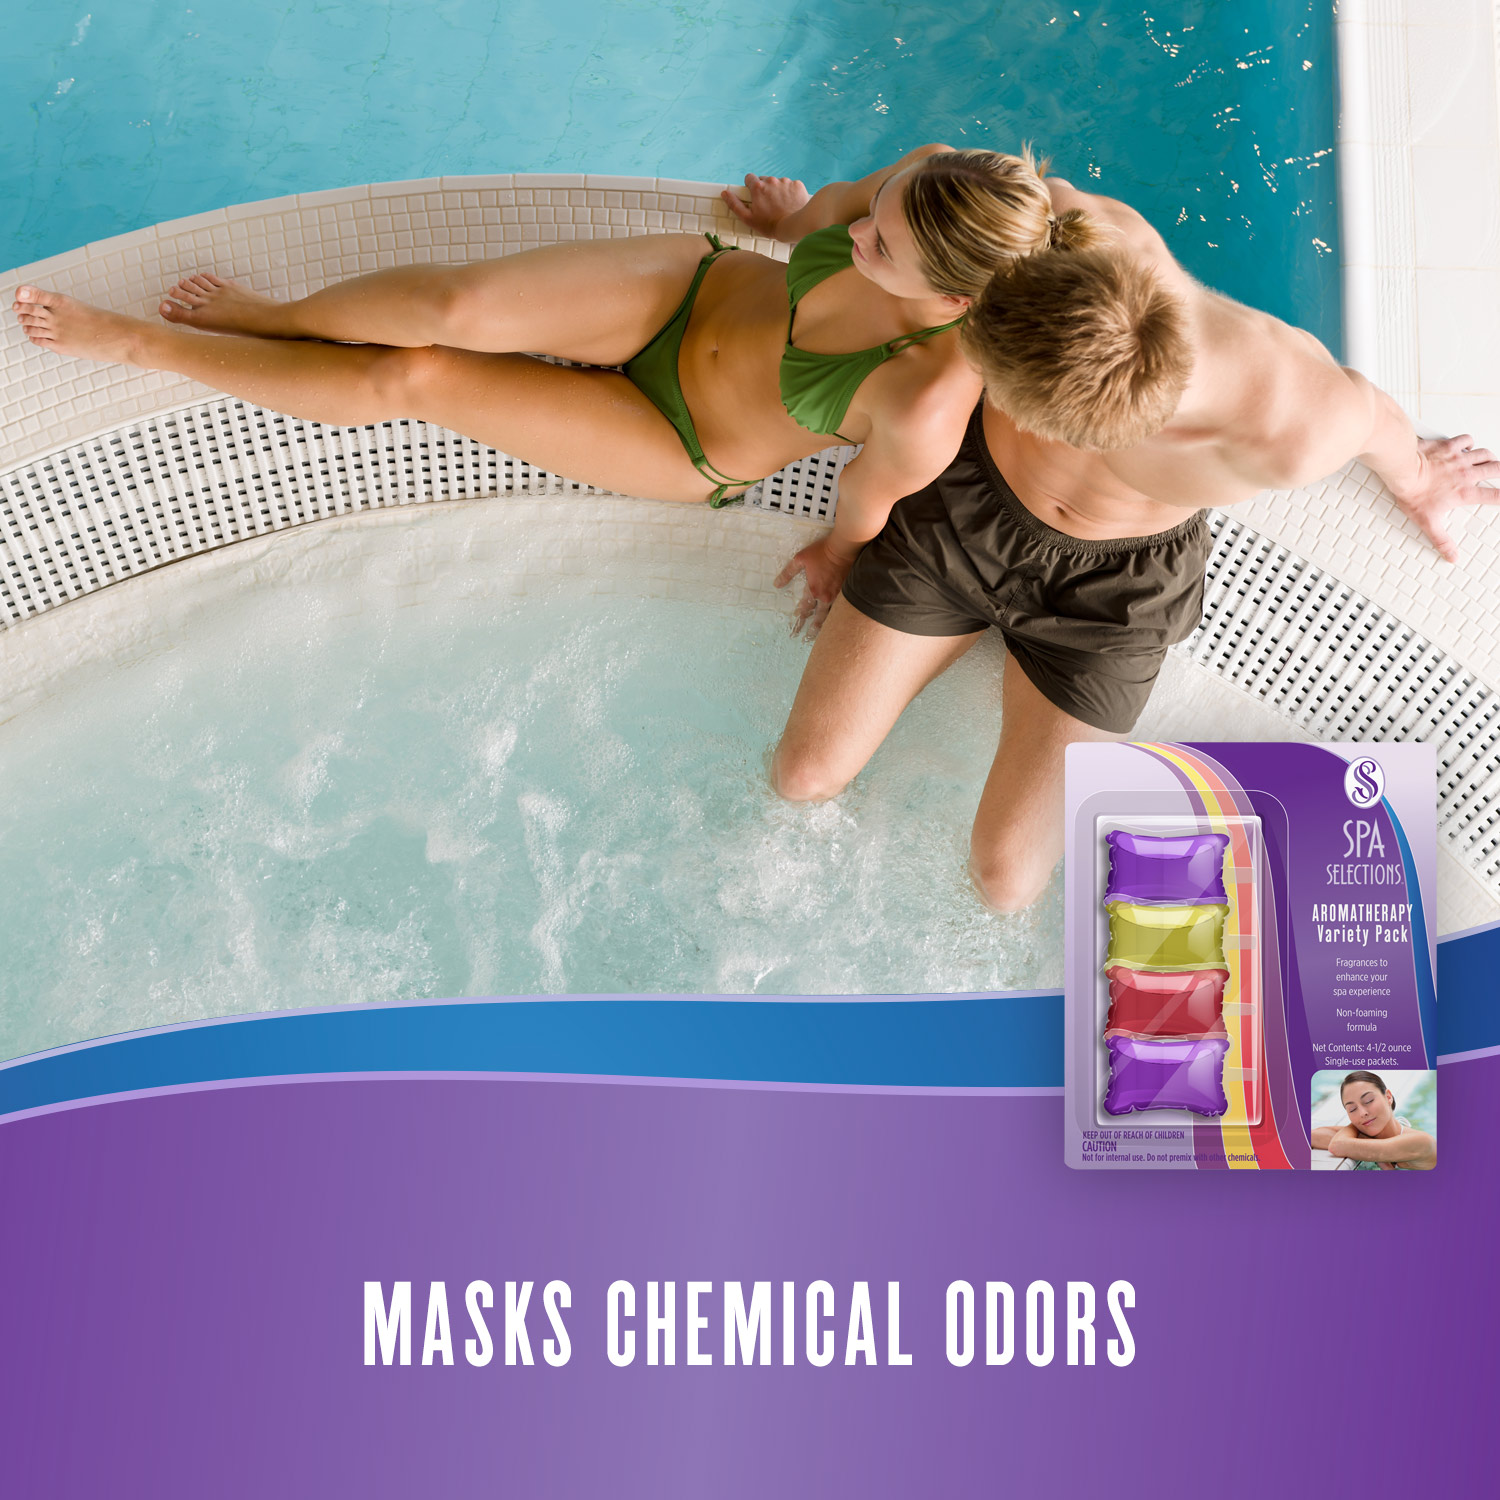 Spa Selections aromatherapy masks chemical odors in spa. Photo of man and woman enjoying a hot tub attached to a pool.